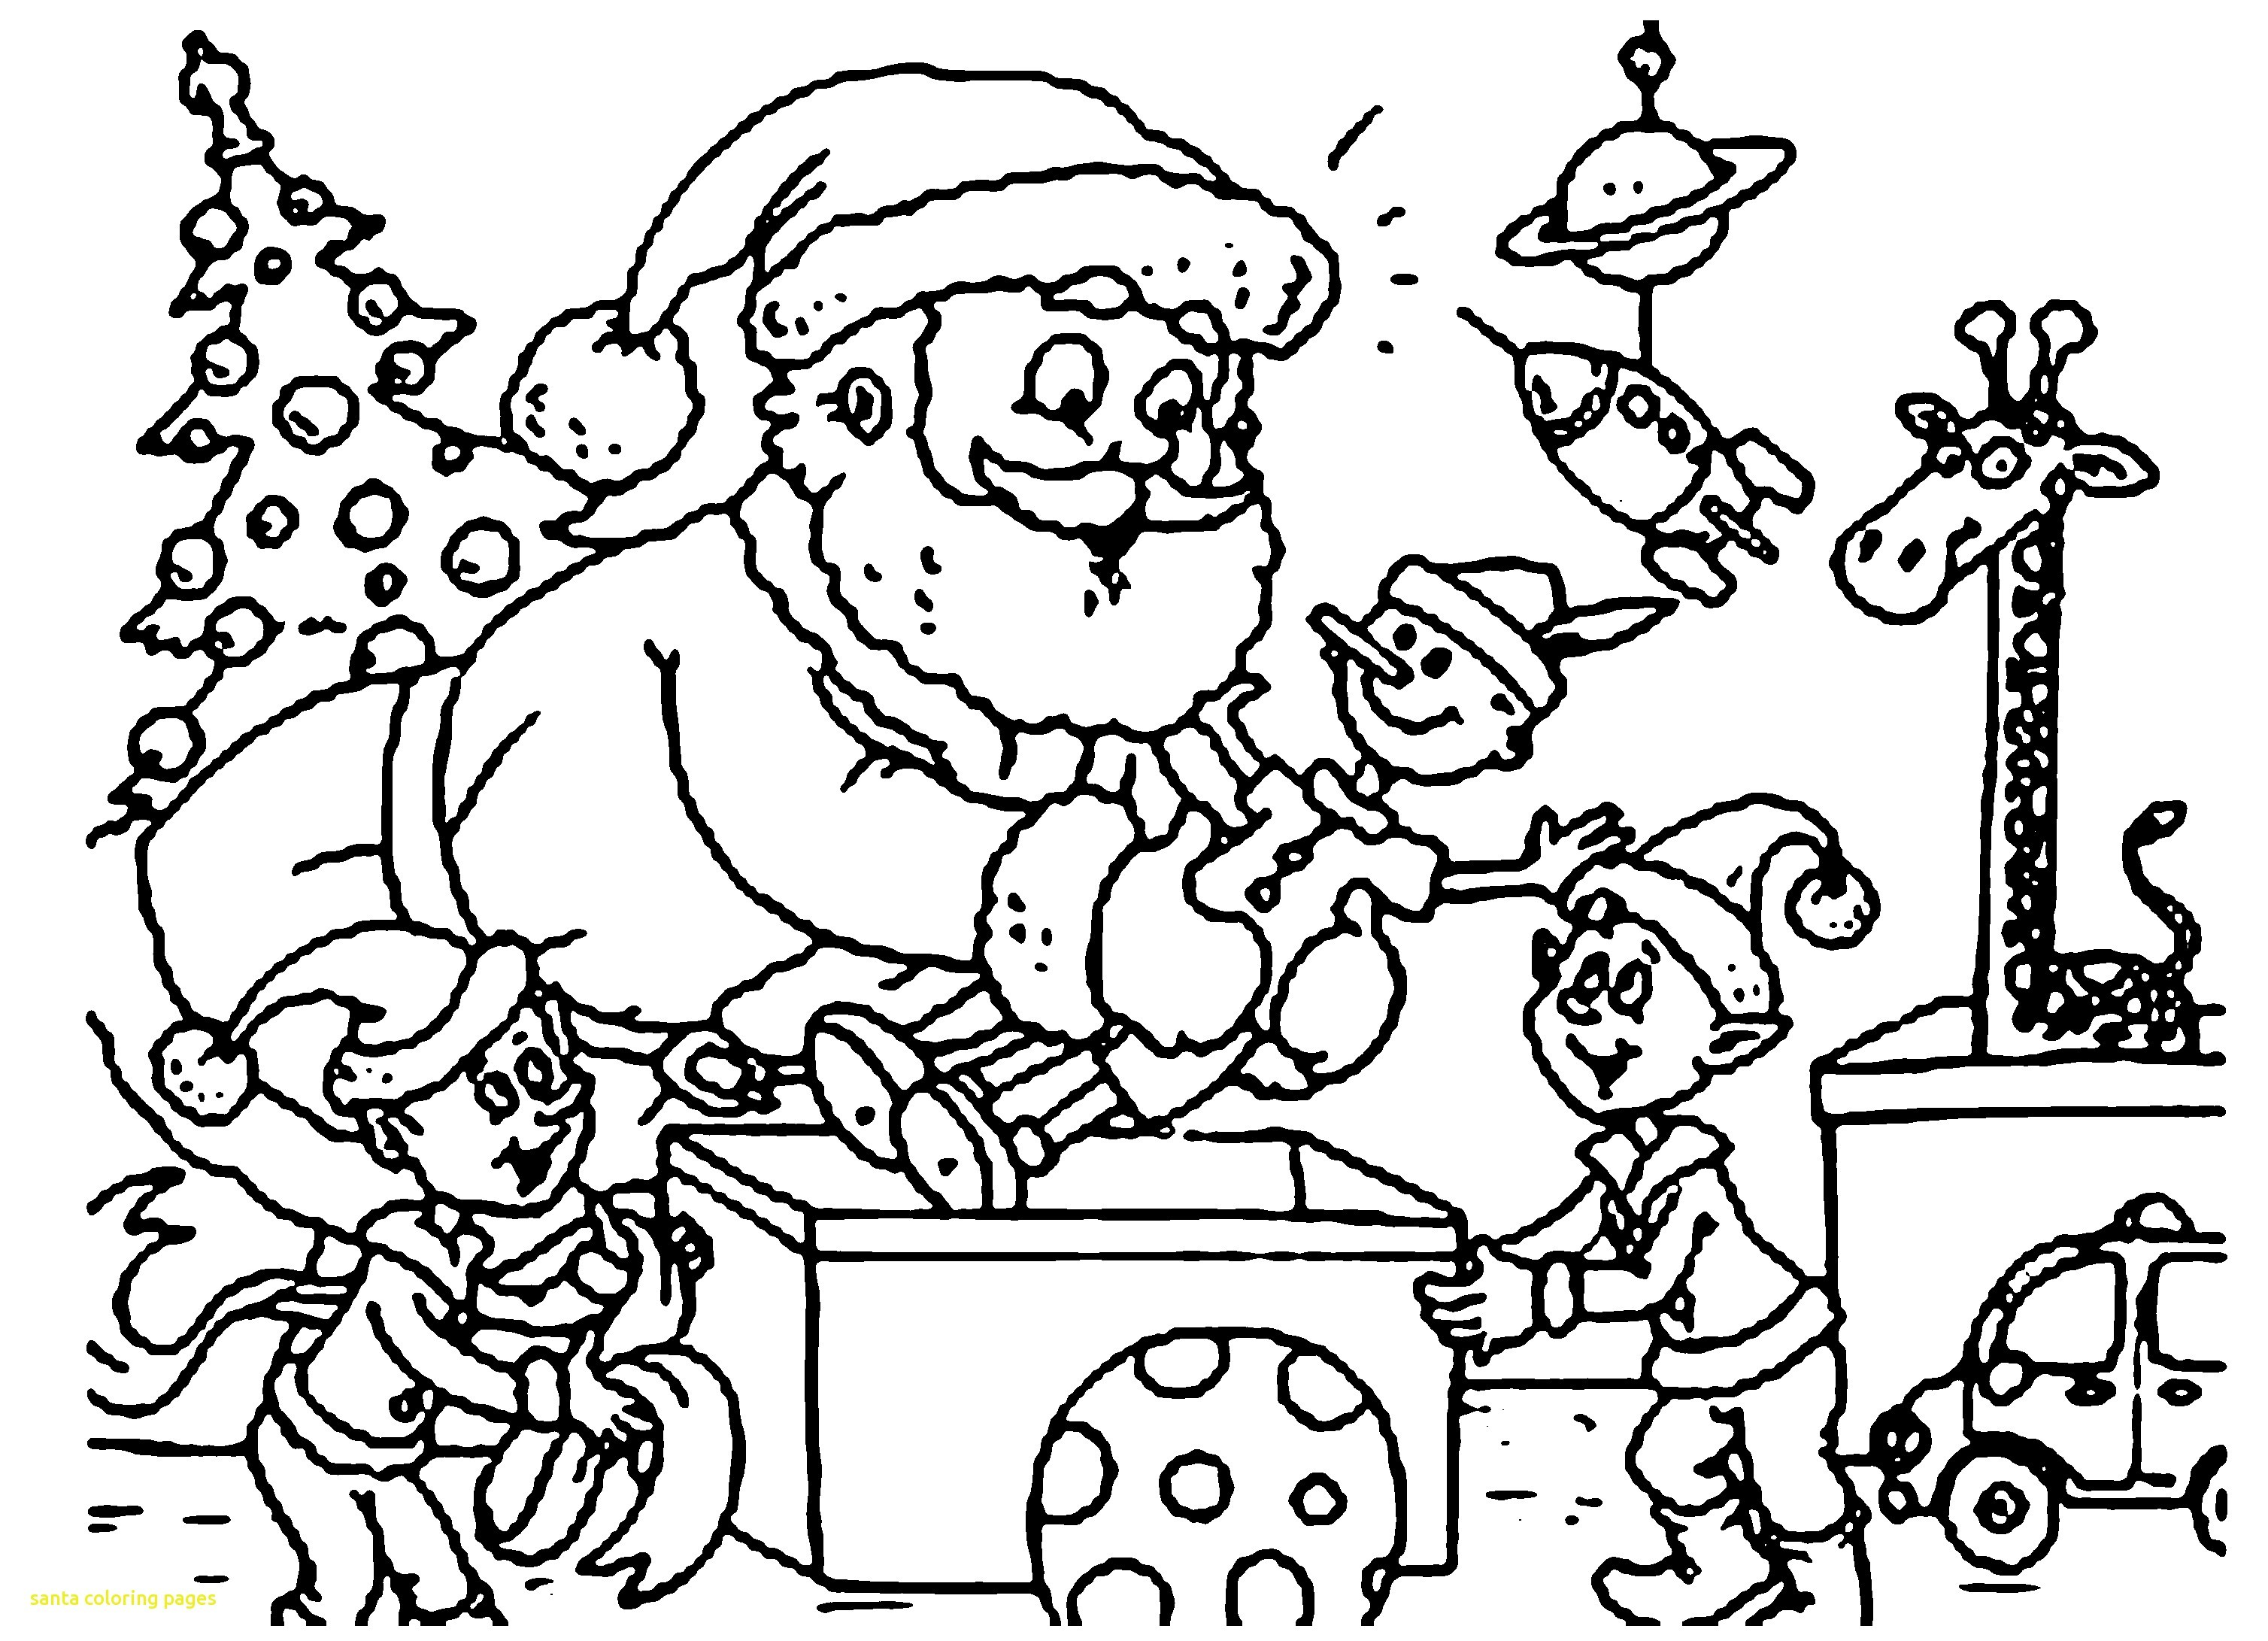 Lego Santa Claus Coloring Pages With And Mrs Archives Caudataco New